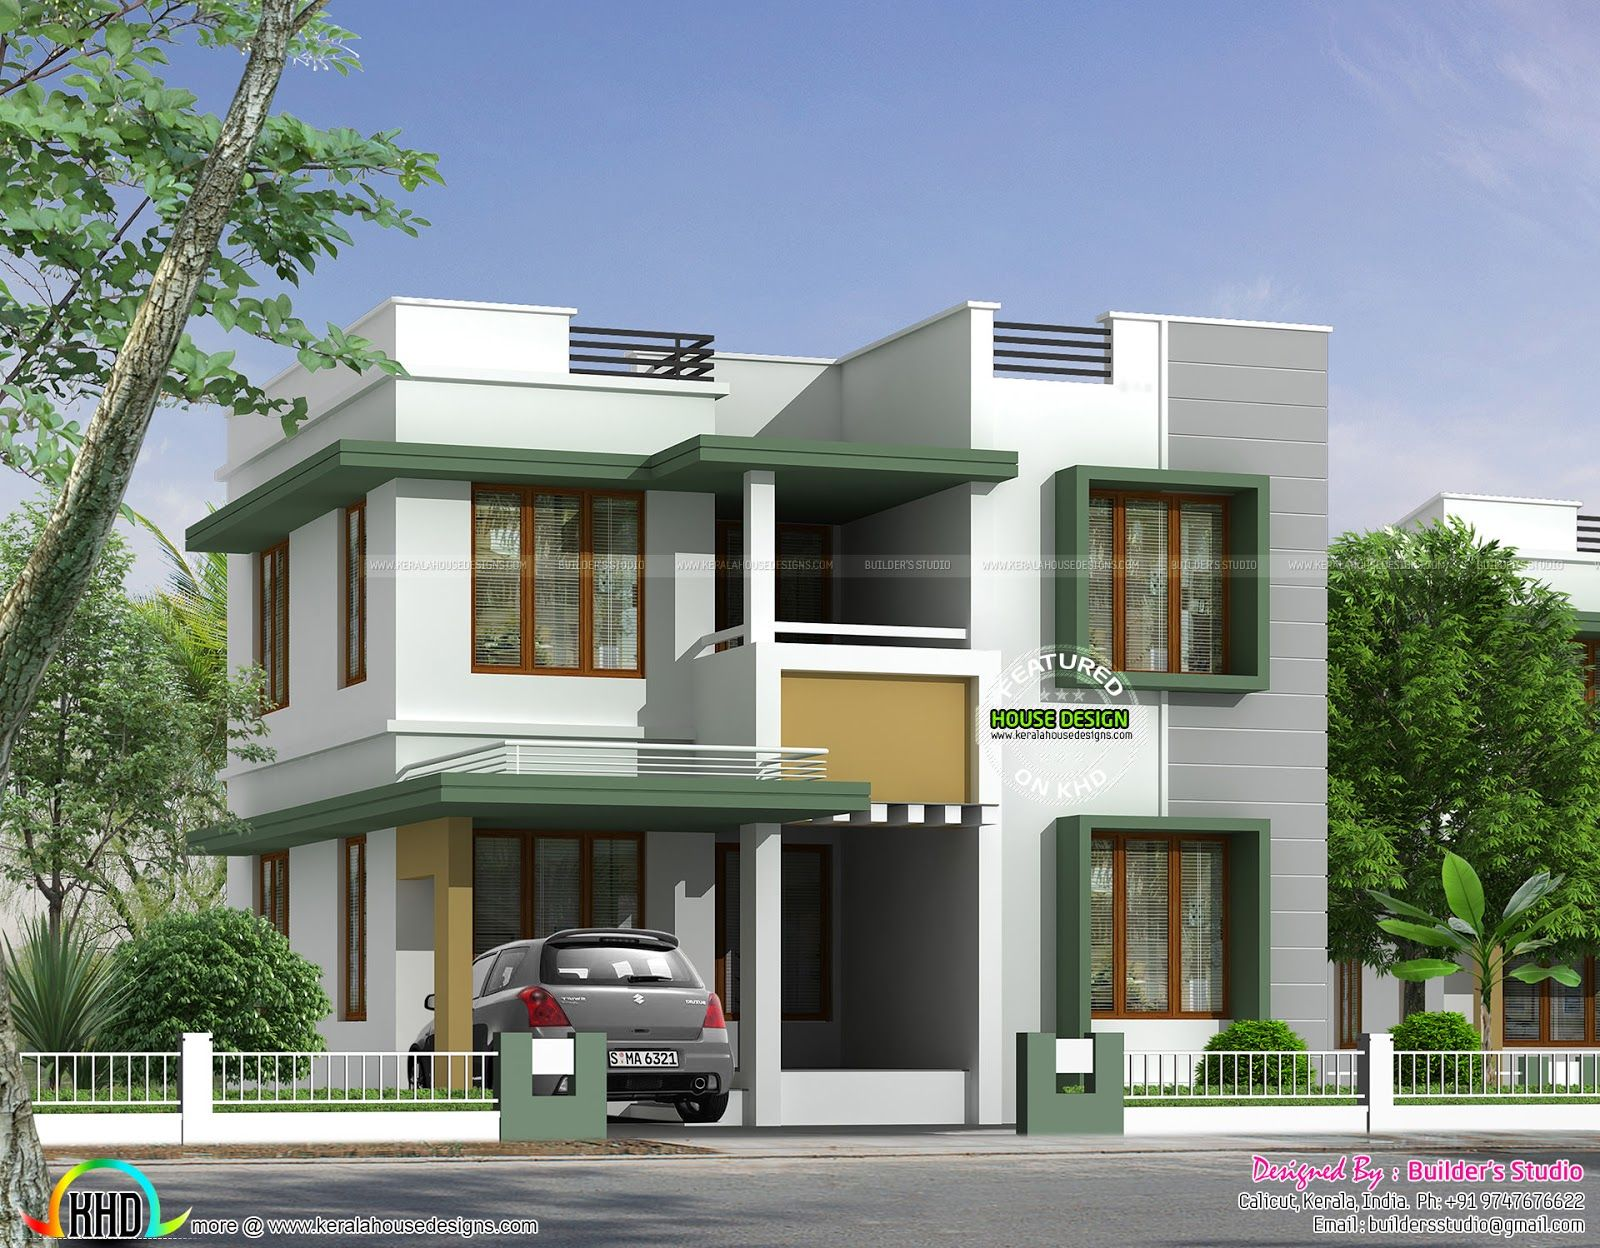 House Plans: Simple Elevation of House | Ideas for the House ...